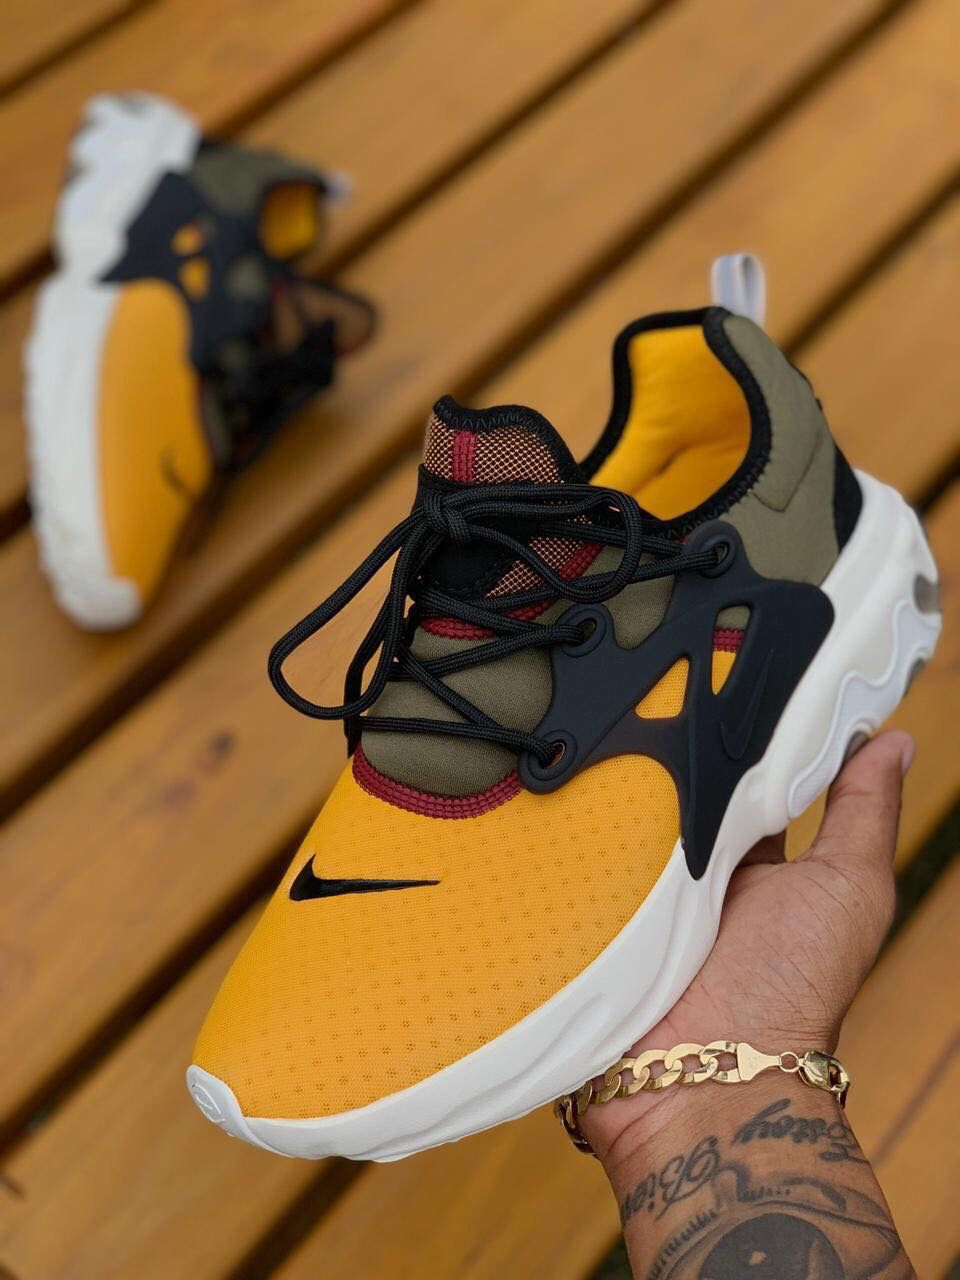 Pin by Aluminum Spice on Clothes to cop | Fashion shoes